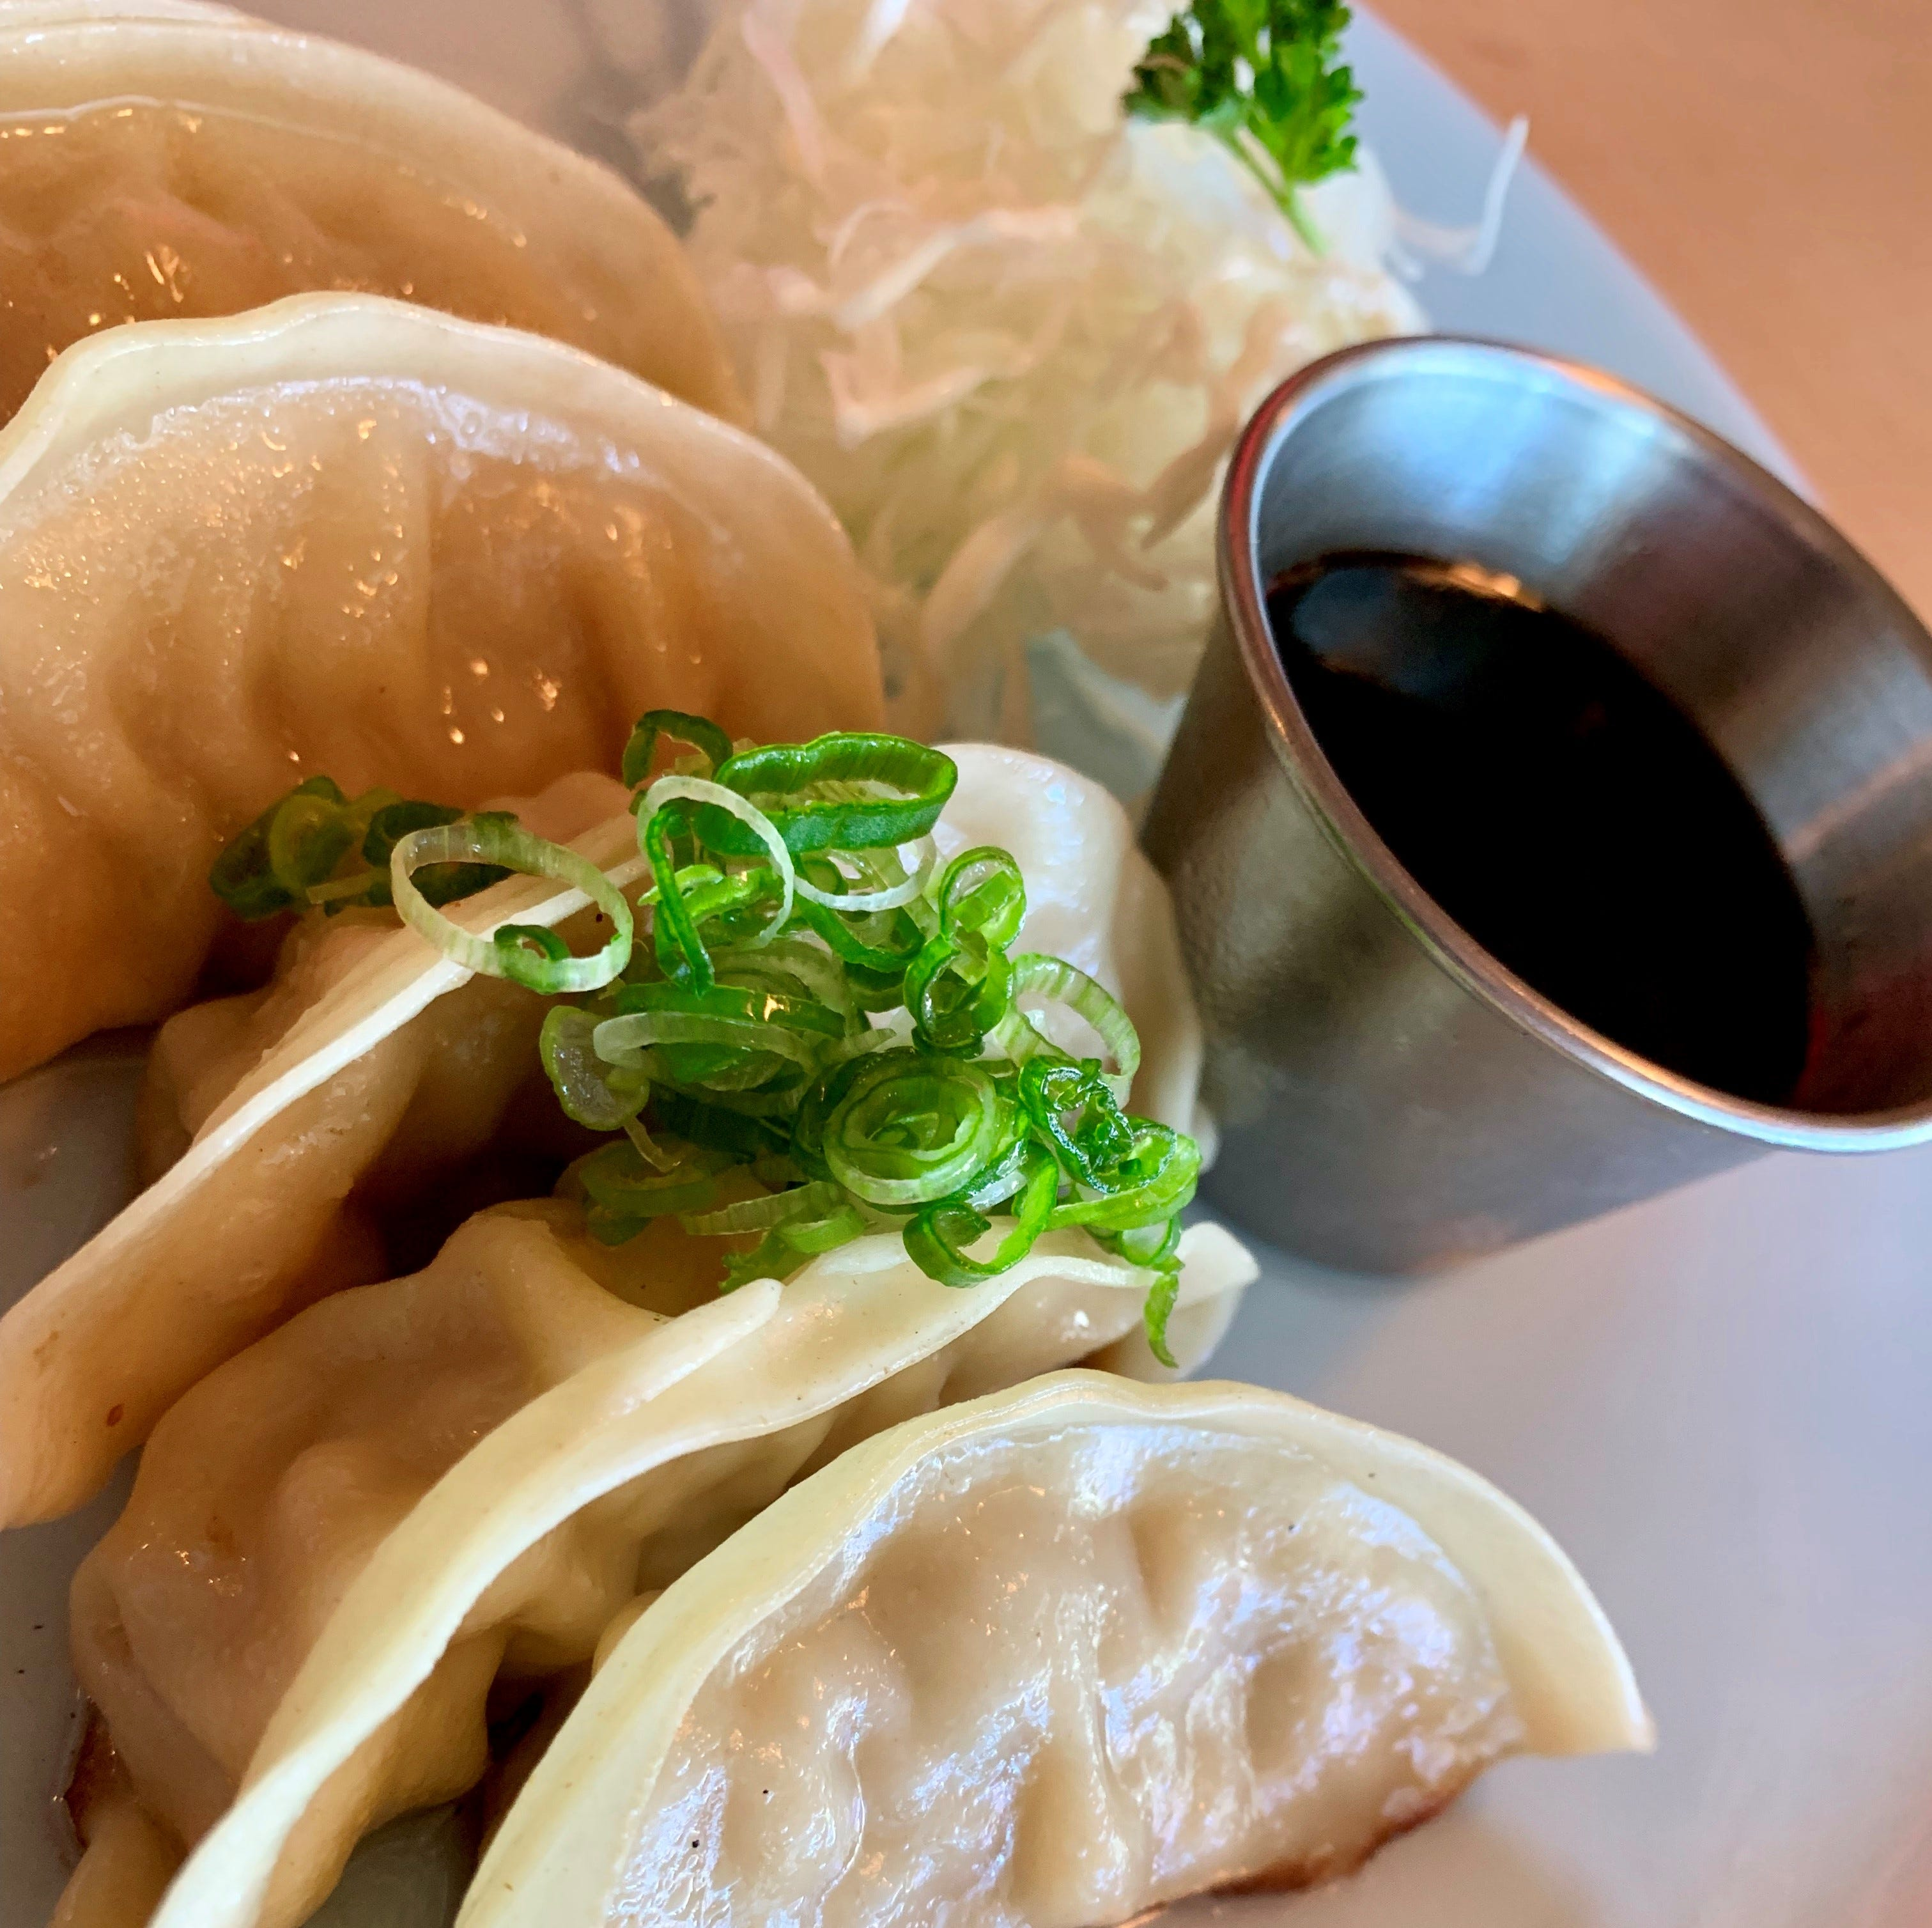 Restaurant review: Naoki in Palm Bay focuses on flavor when it comes to sushi,  ramen